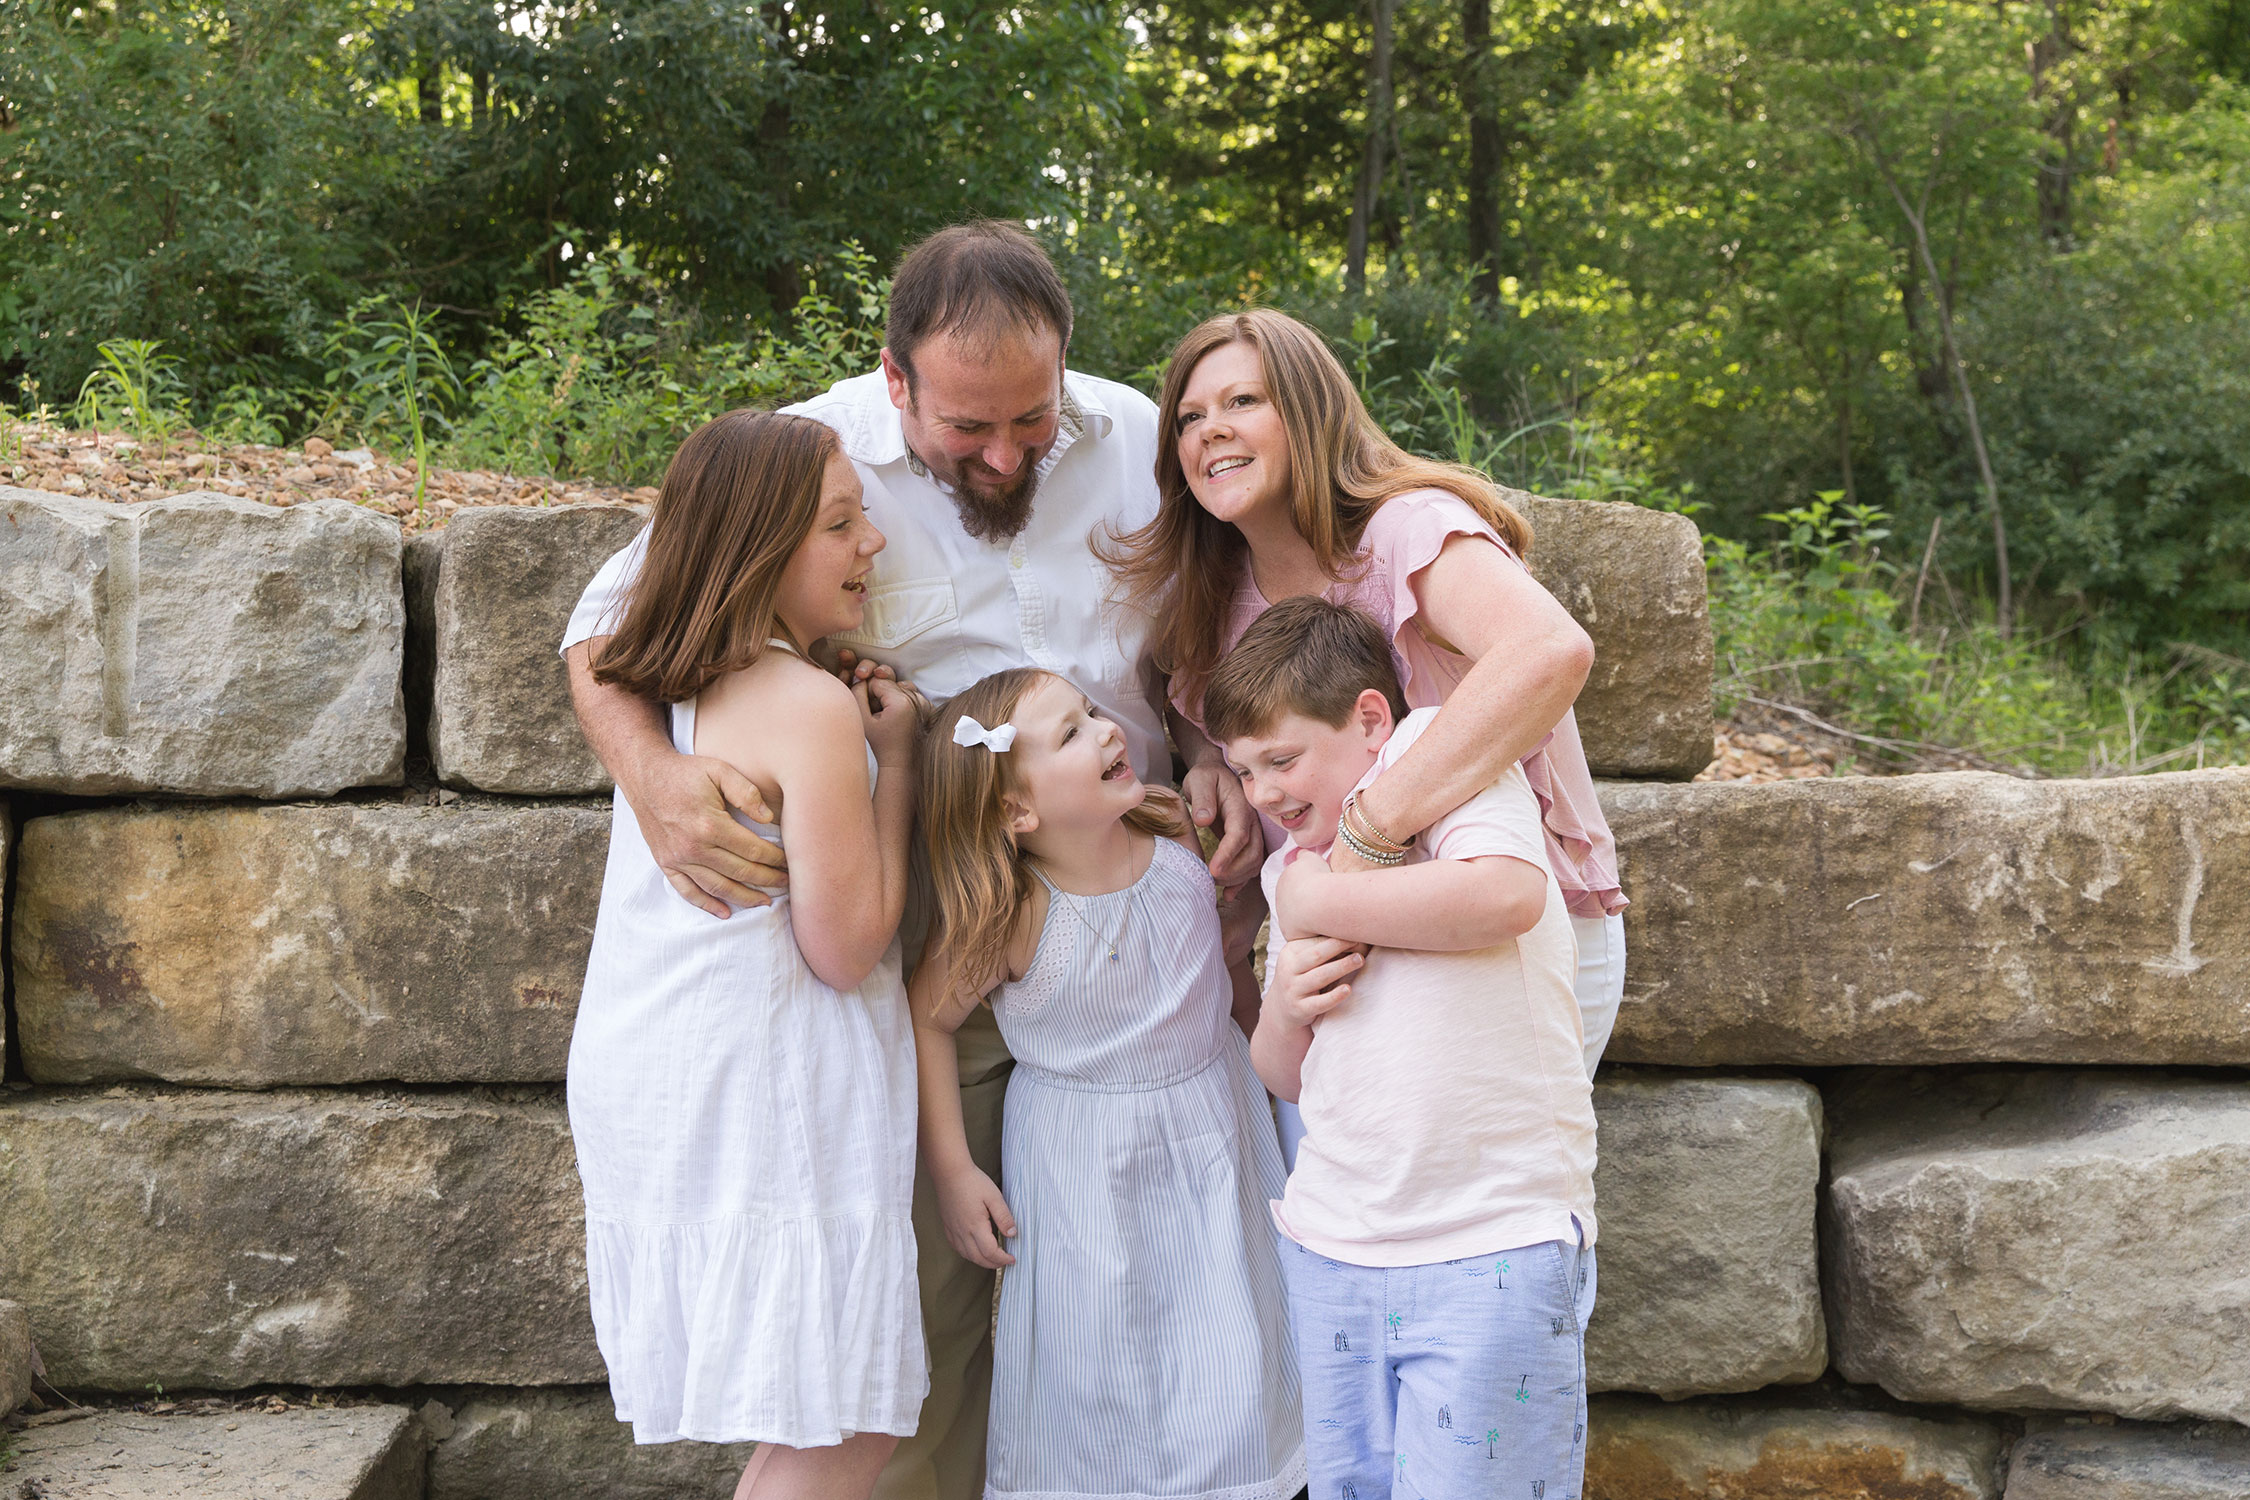 Family of 5 laughing | KGriggs Photography | St. Louis Family Photographer